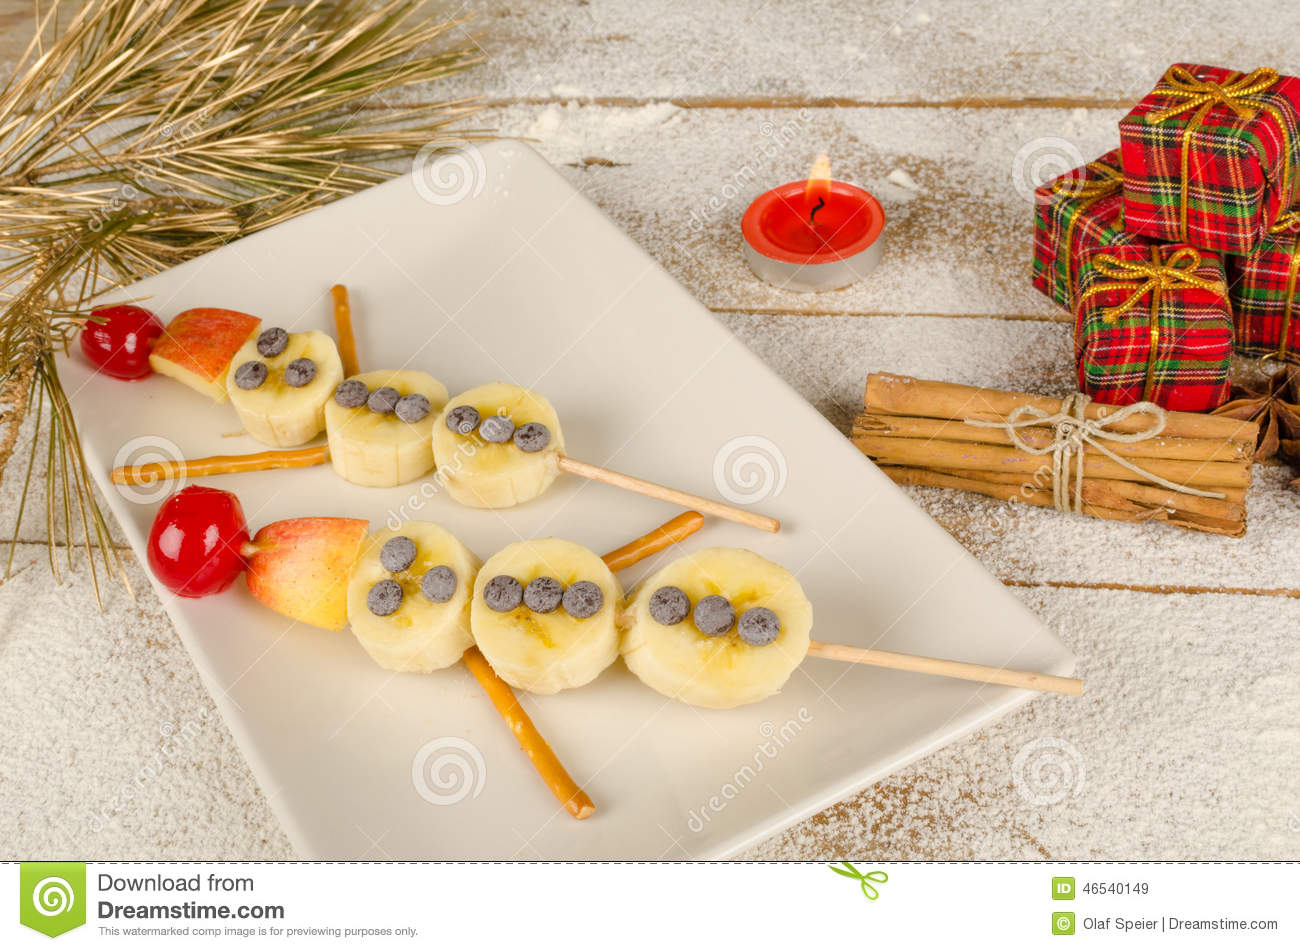 Christmas dessert for kids stock image. Image of banana - 46540149